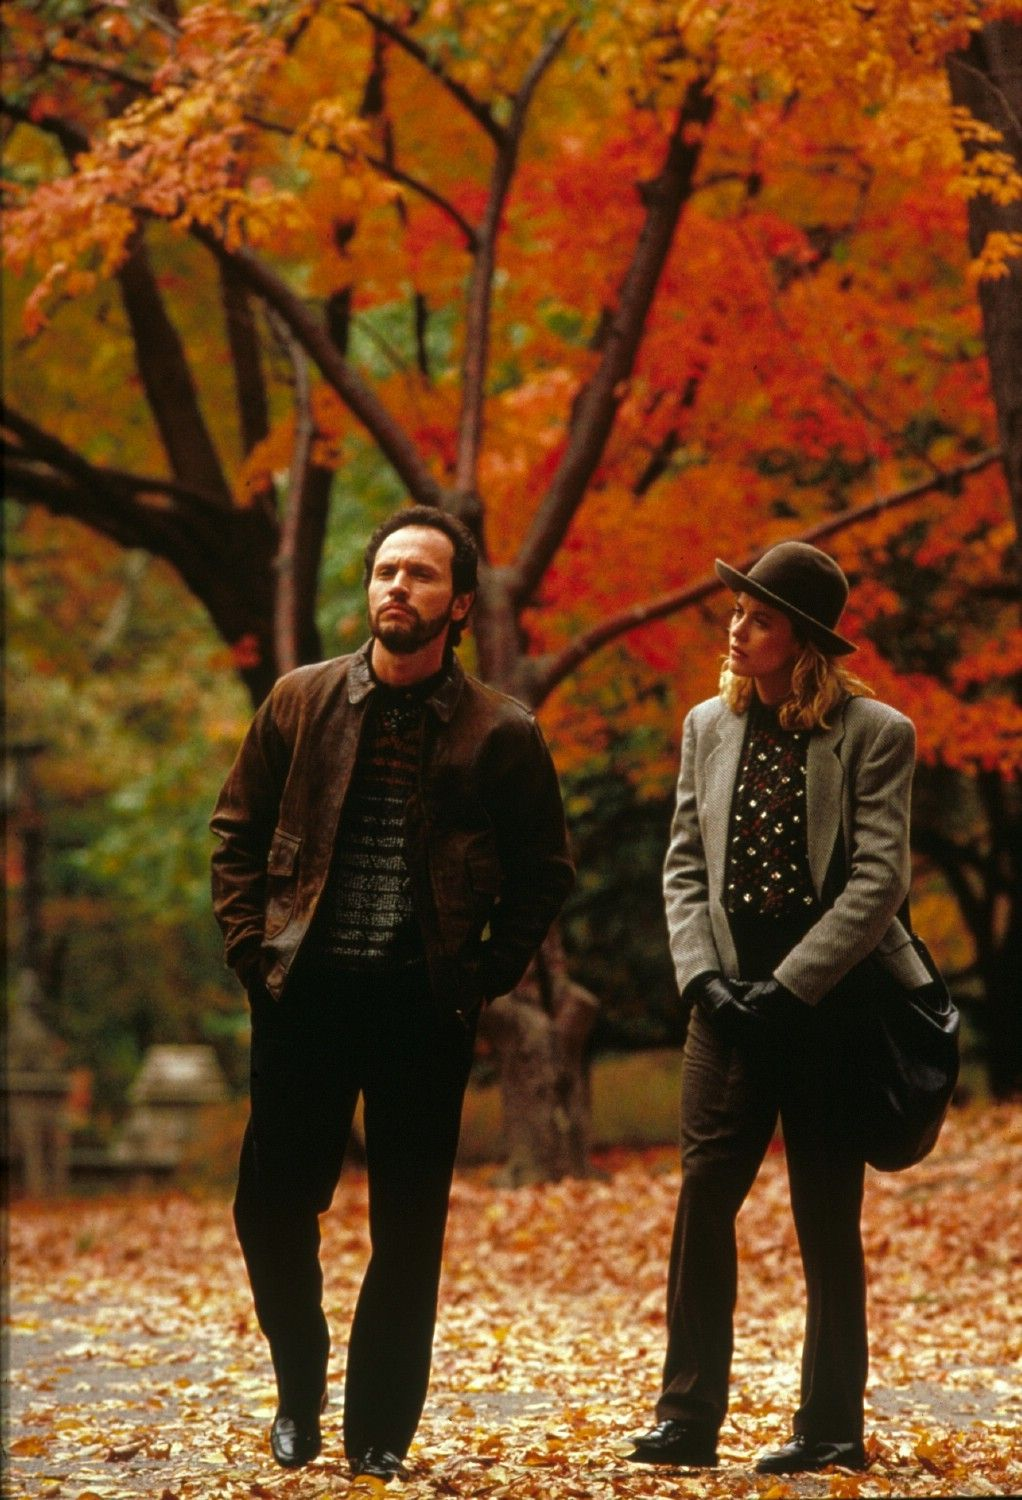 a movie analysis of when harry met sally Summary of scenes 4-12 : harry and sally have just met through a mutual friend  and in this sequence they travel together to new york in a car.